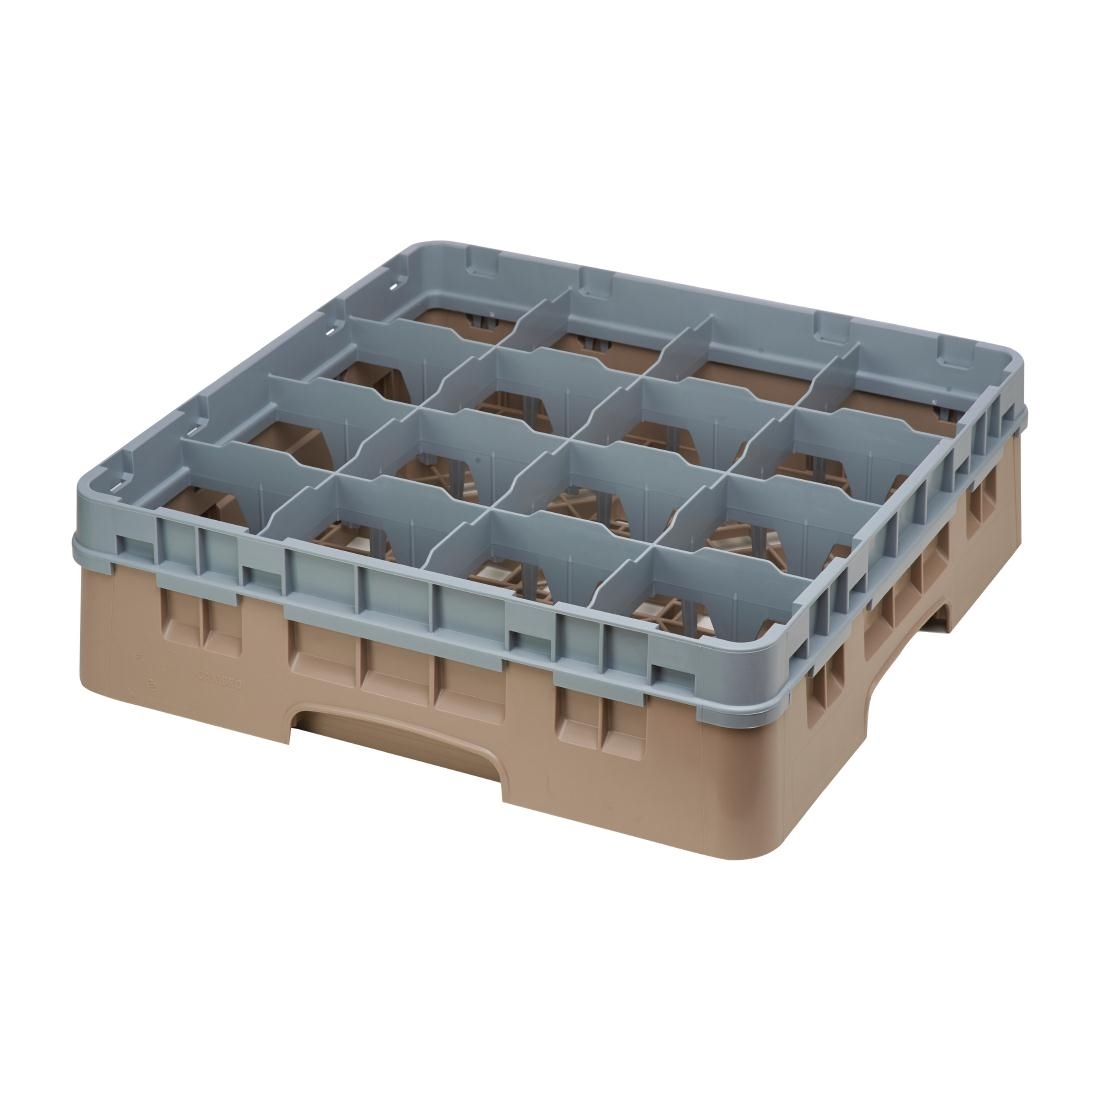 Cambro Camrack Beige 16 Compartments Max Glass Height 114mm